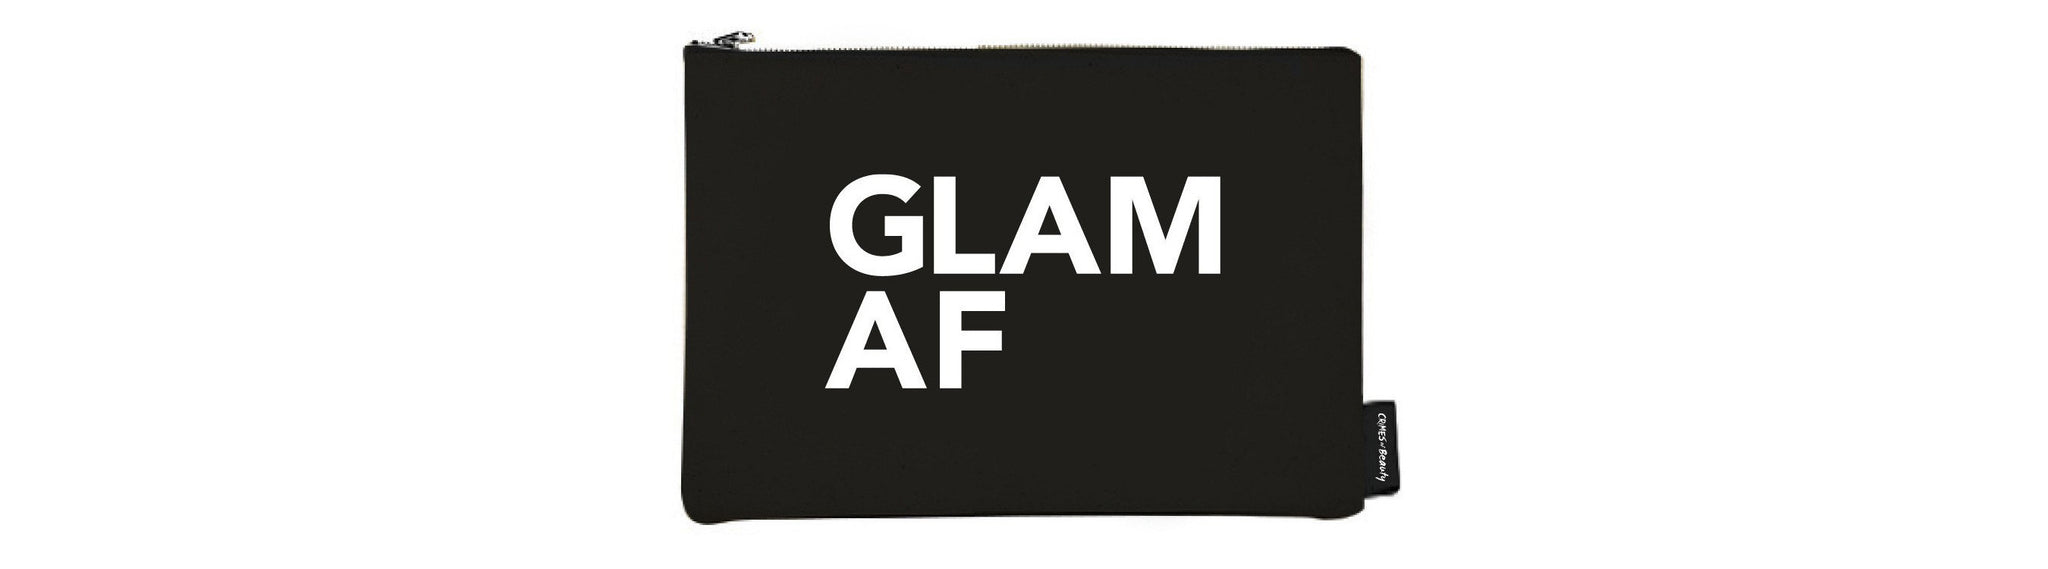 BLACK CANVAS MAKEUP BAG GLAM AF